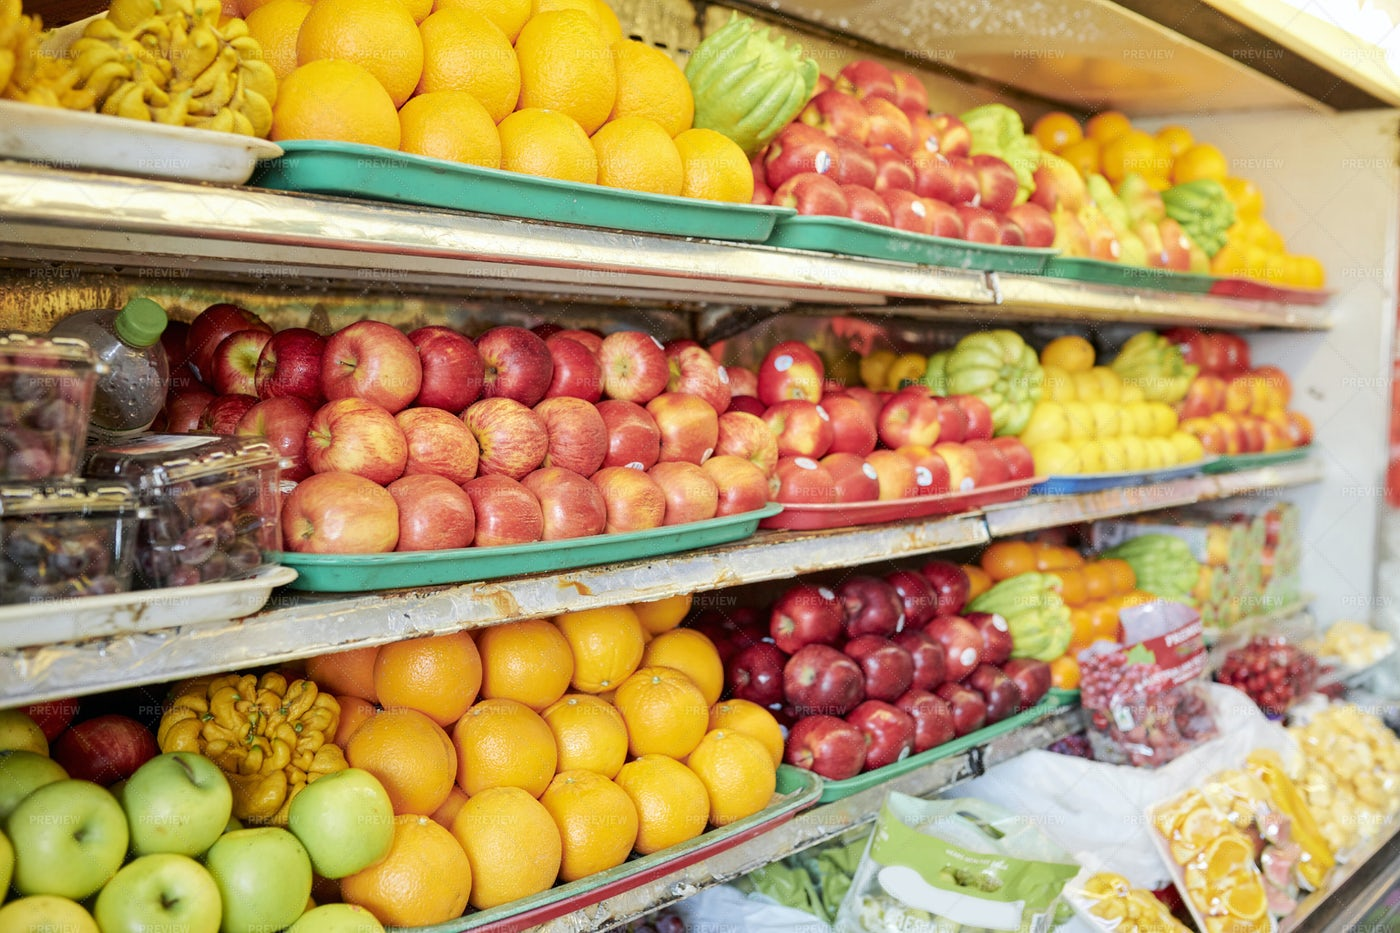 Shelves With Fruits At Grocery Store: Stock Photos